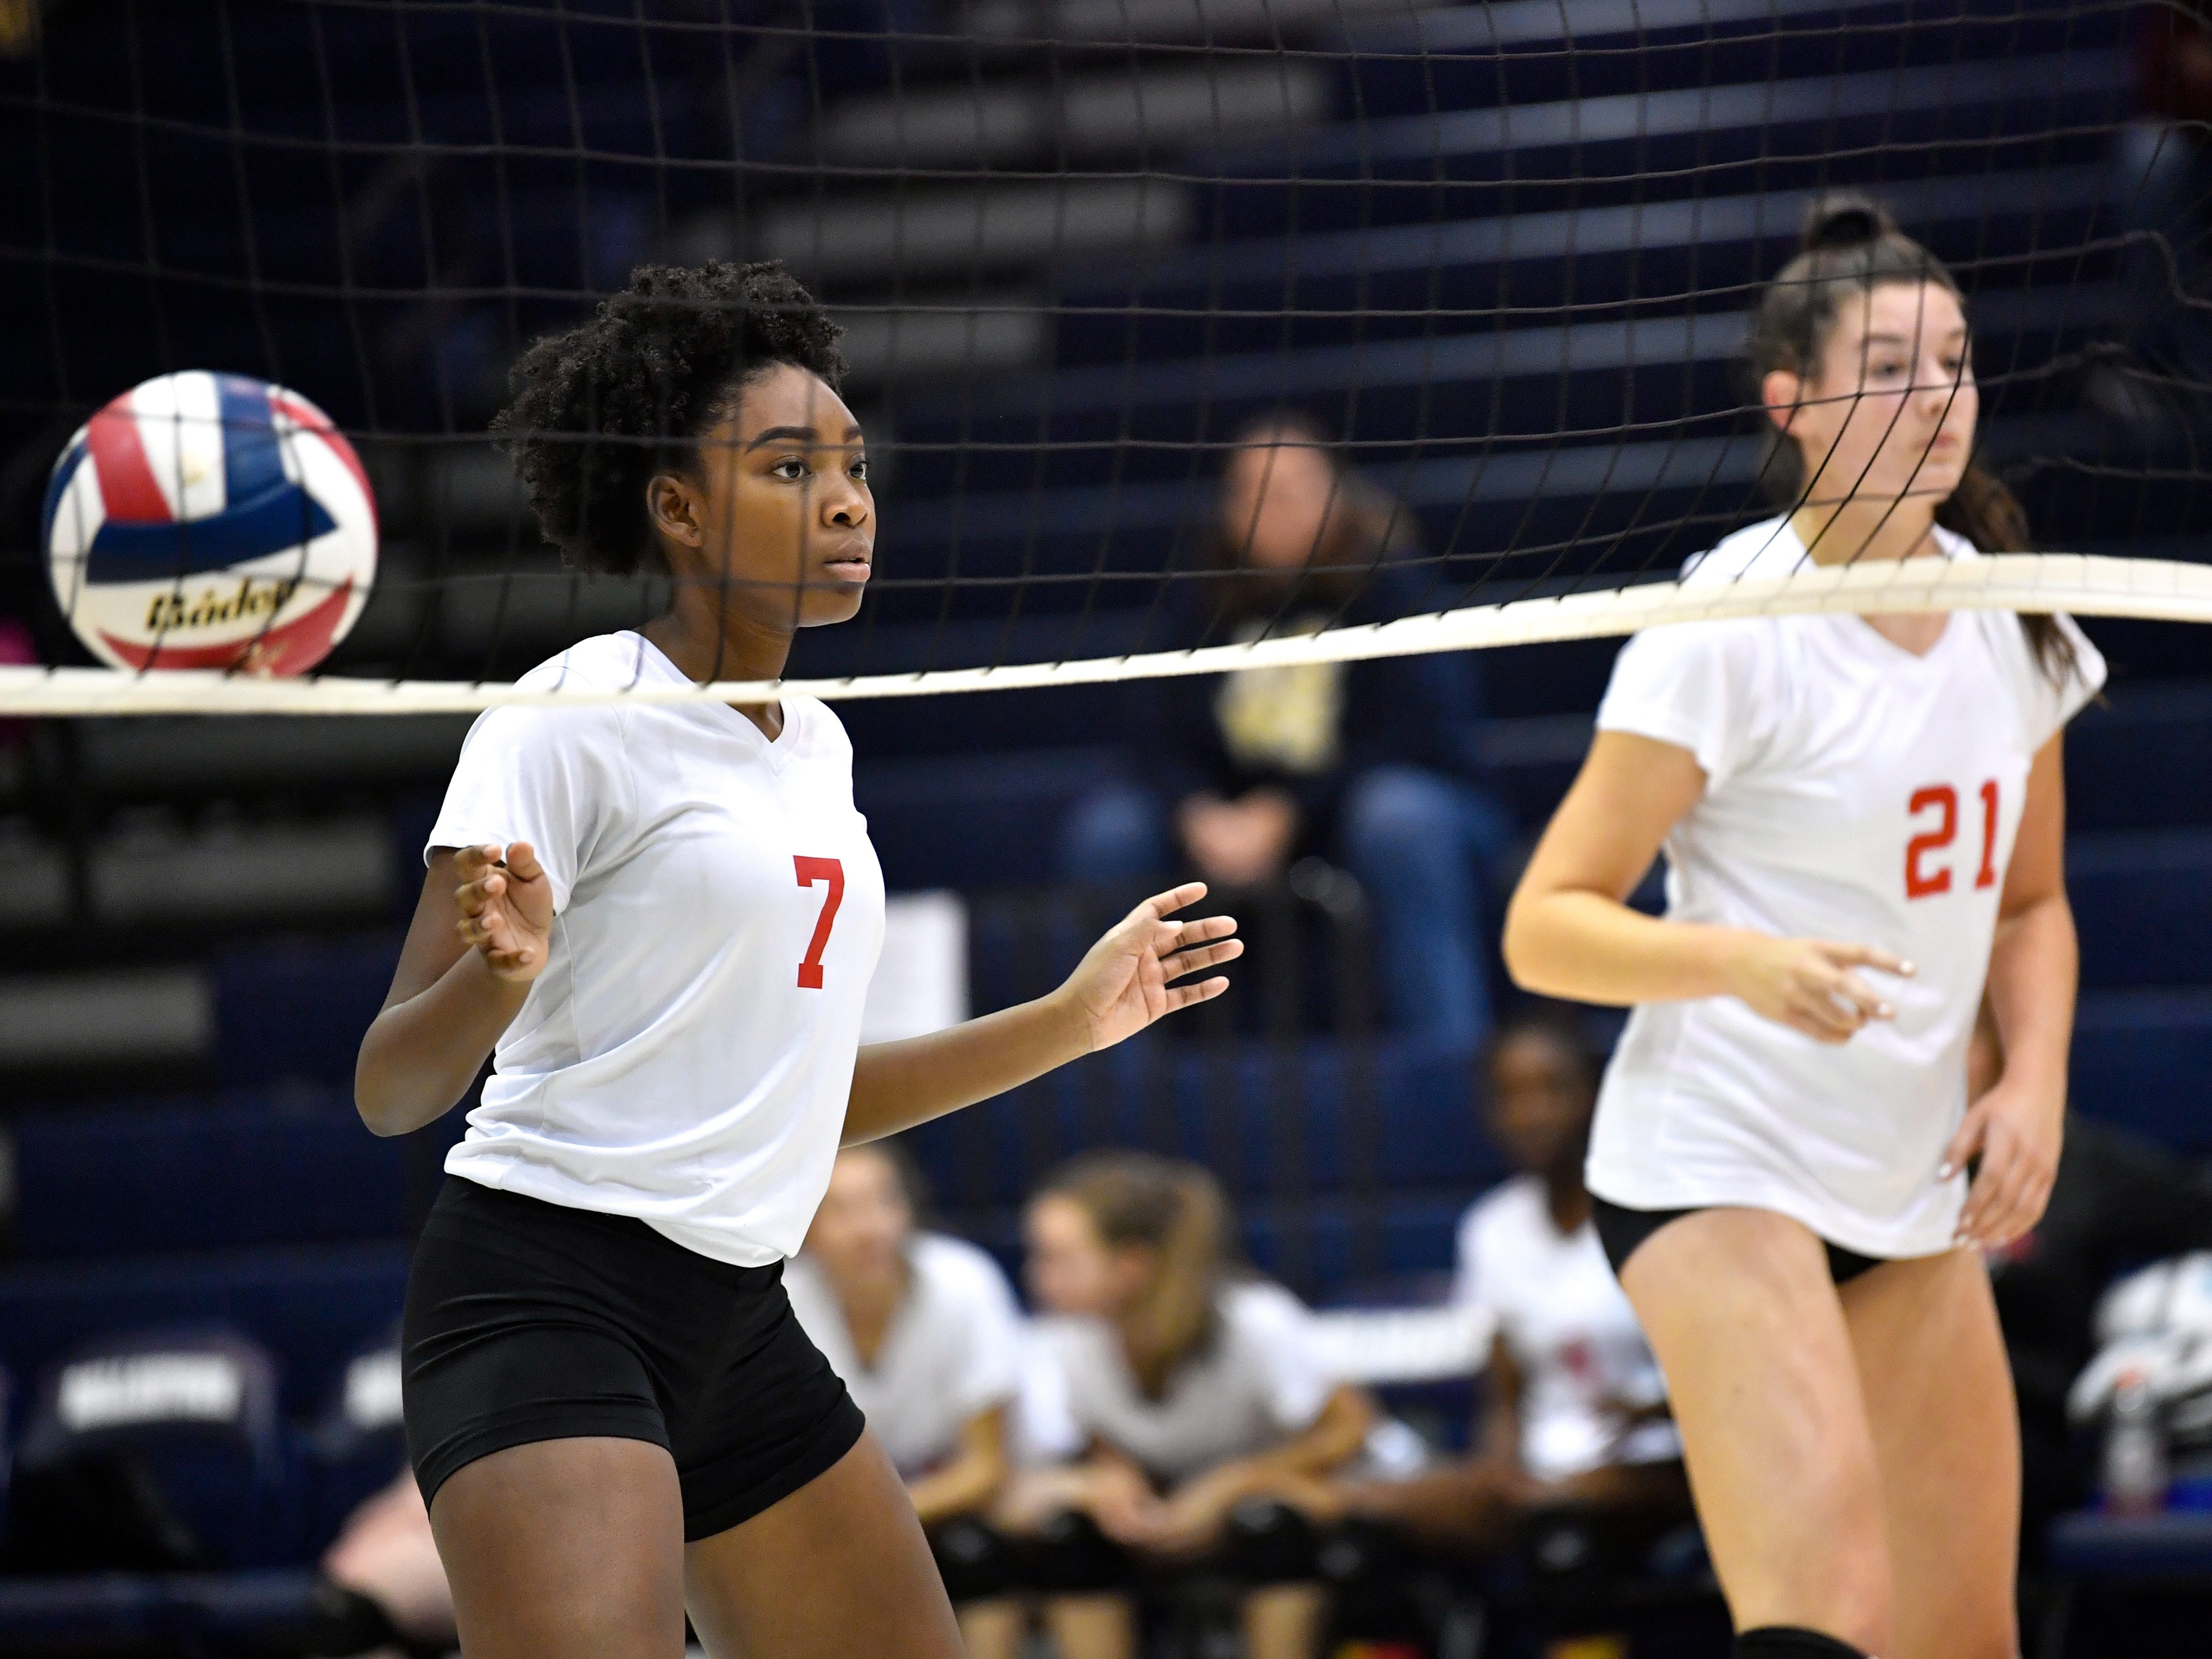 Triana Krider (7) and Emma Davis (21) stand at the net during the YAIAA league volleyball tournament semifinals between West York and Dover, Tuesday, October 23, 2018. The Bulldogs defeated the Eagles 3-1.